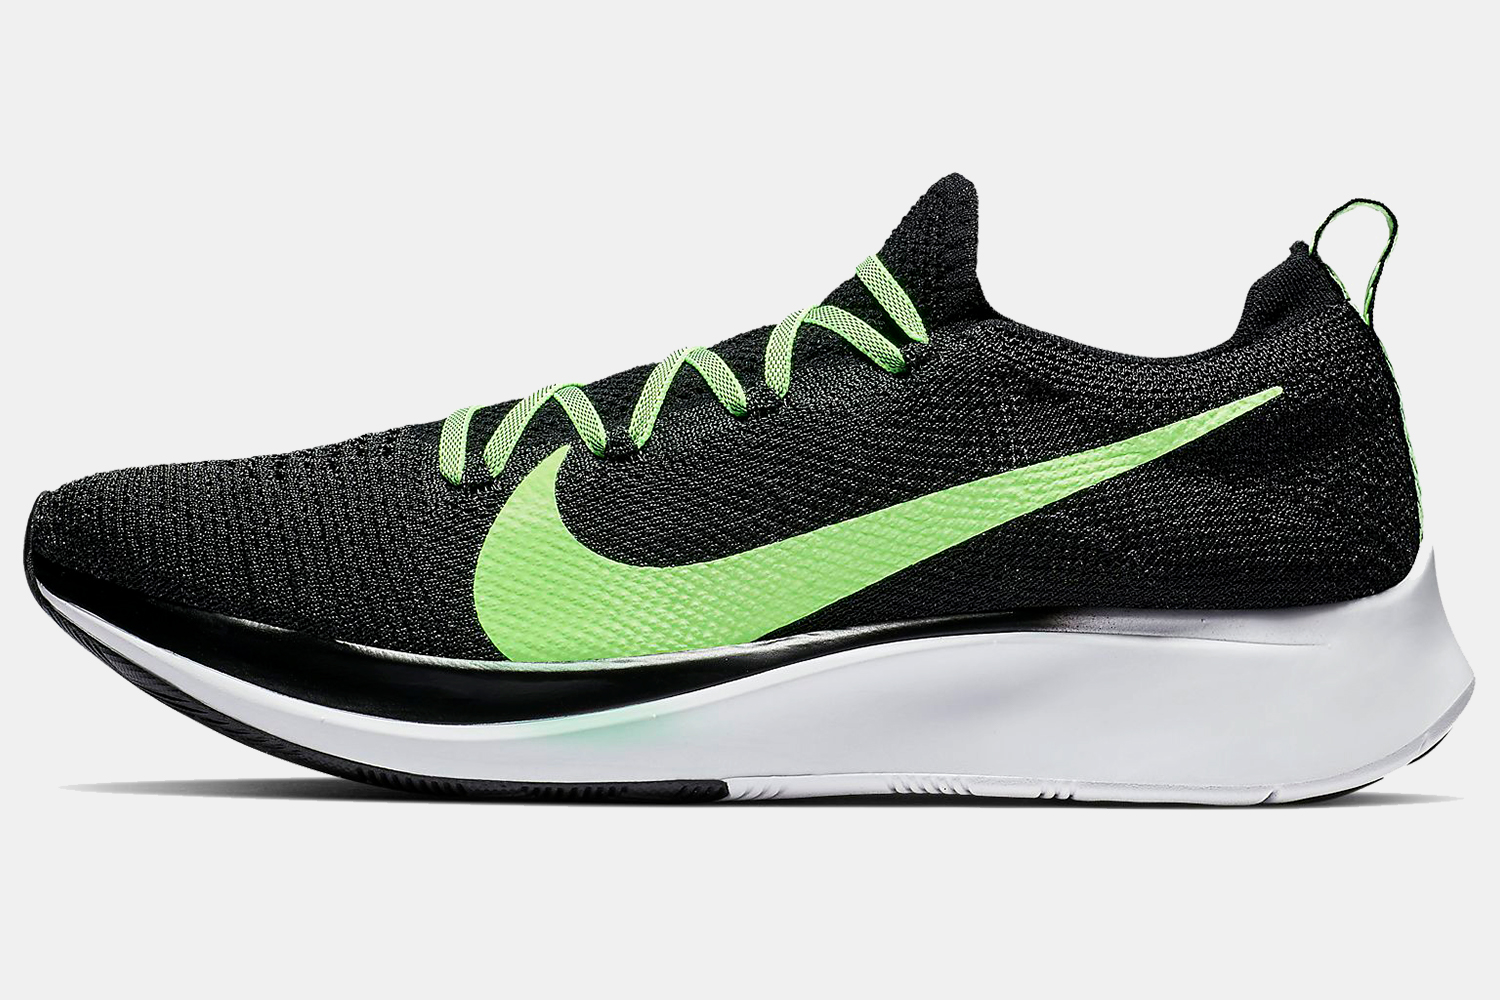 ca25b46c5e8a The Zoom Fly Flyknit combines the VaporFly 4%